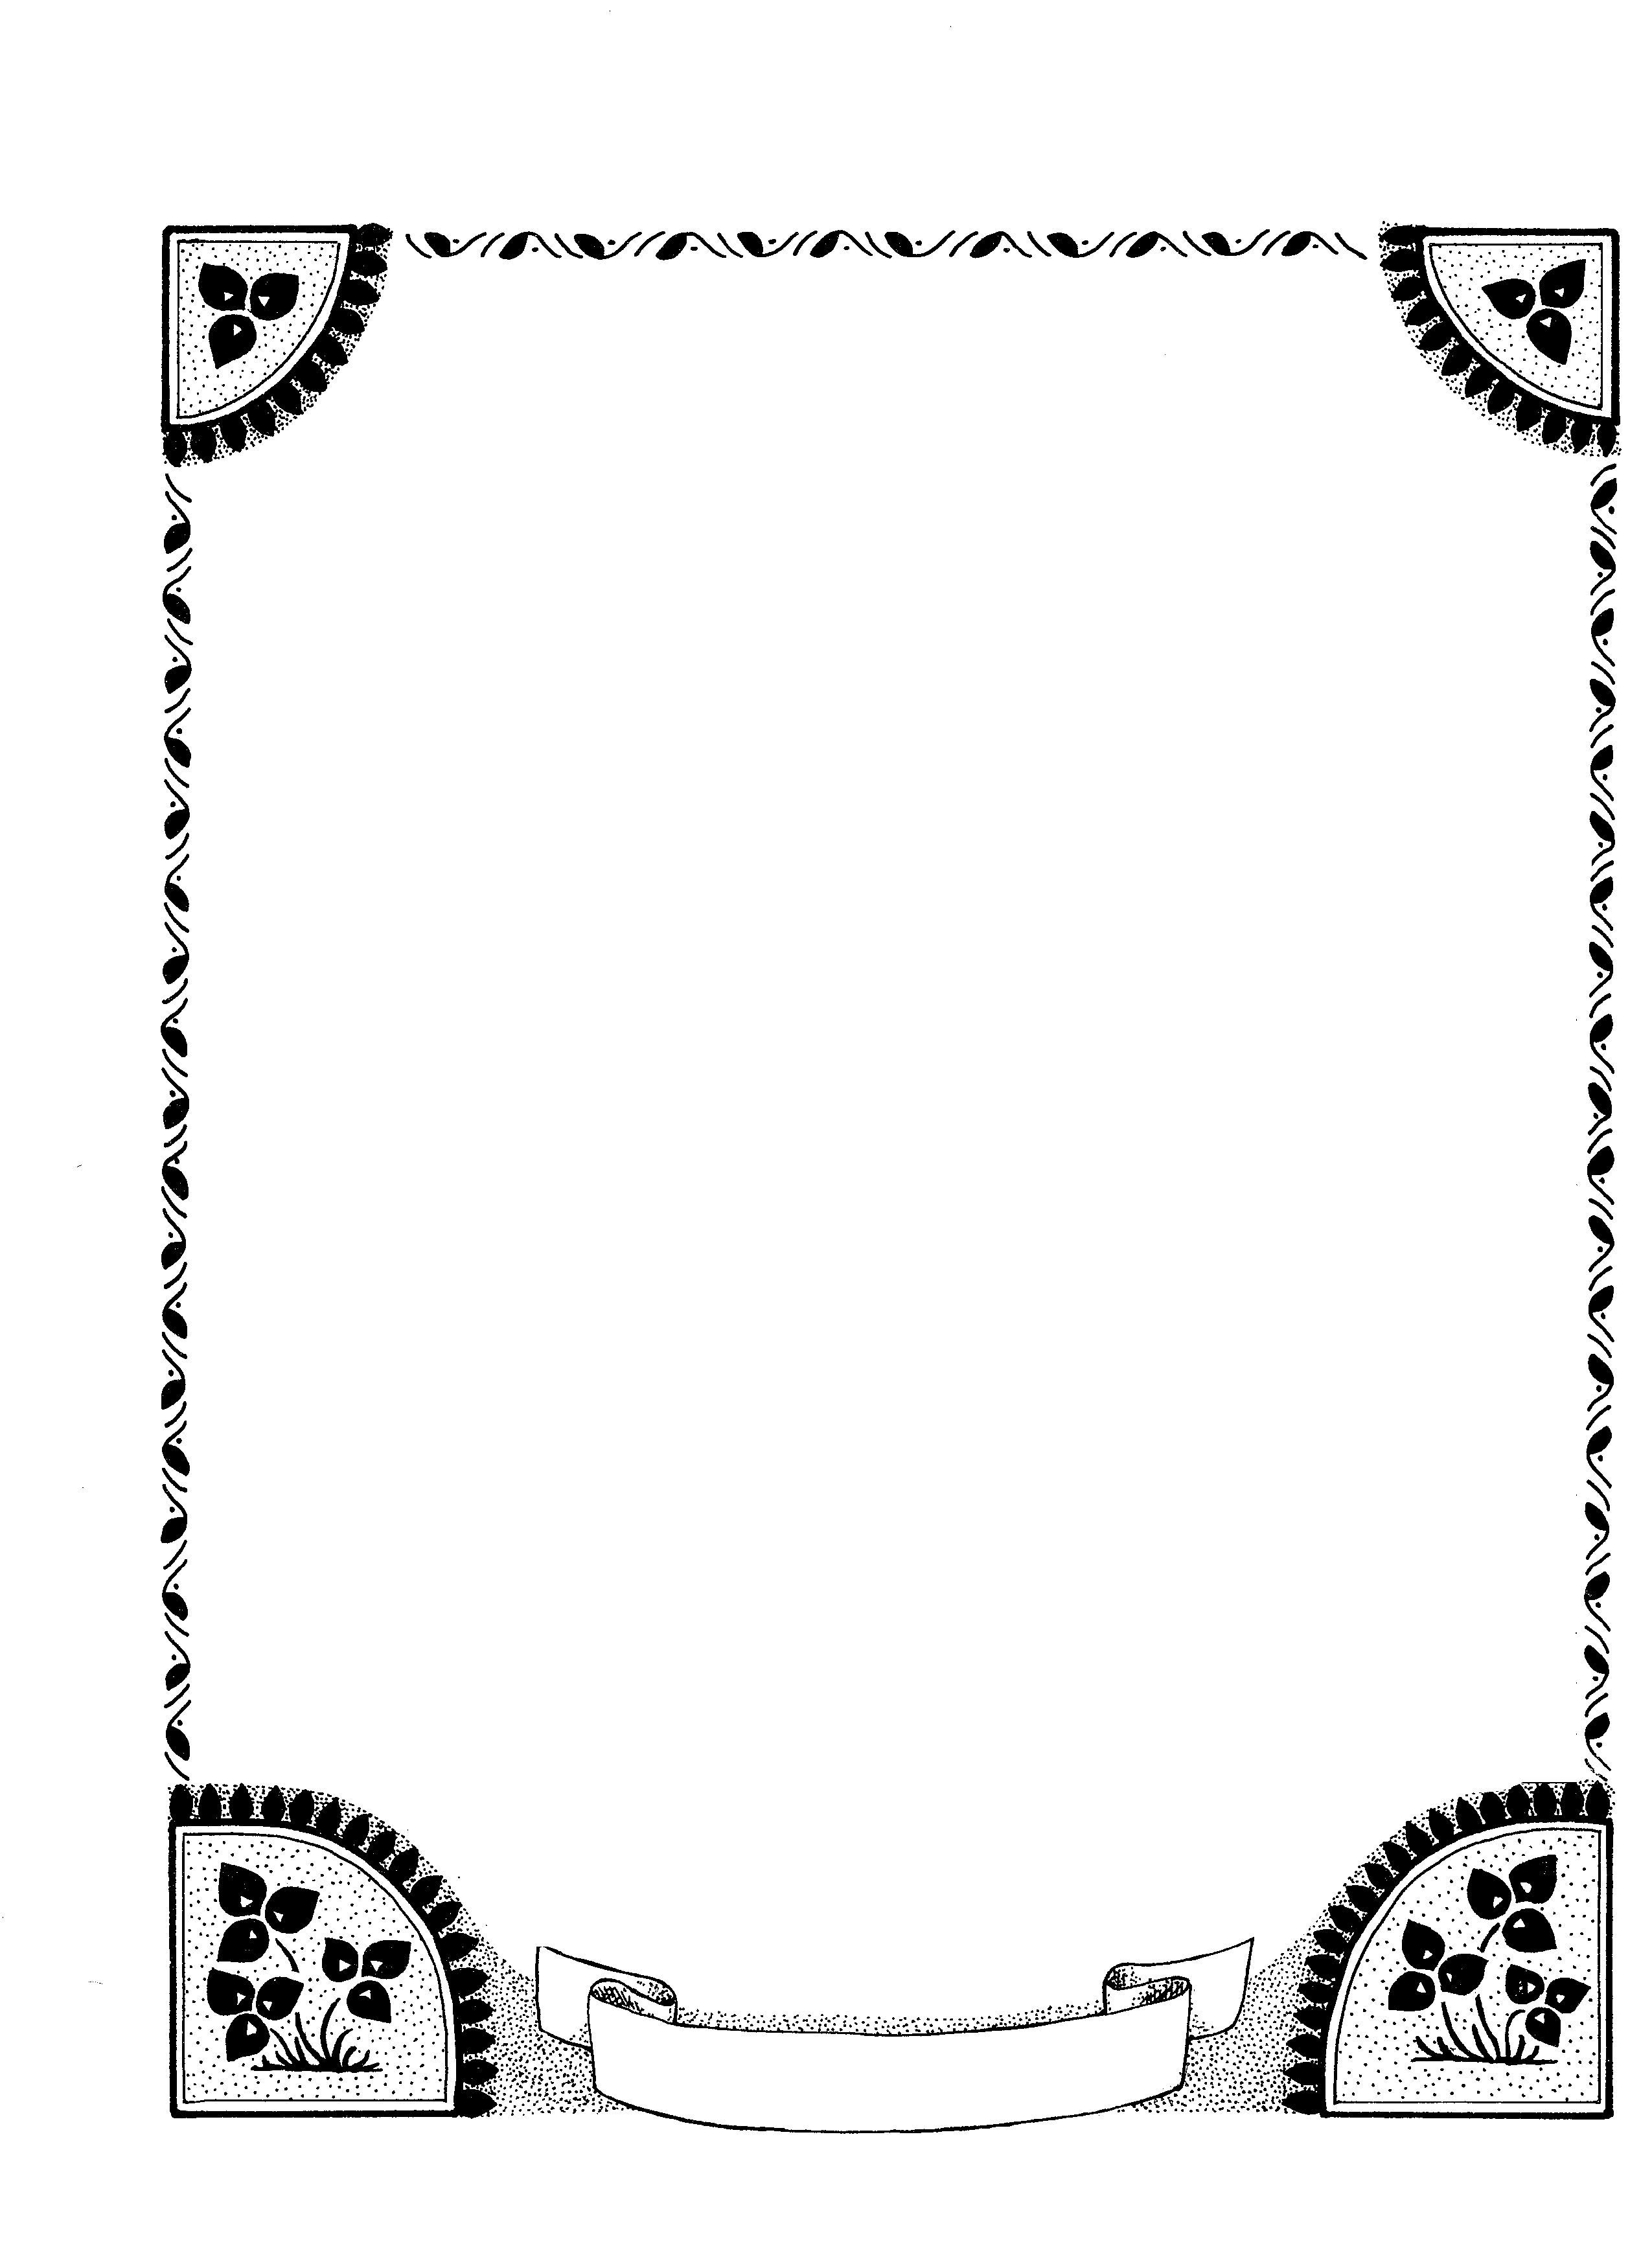 Assignment border designs